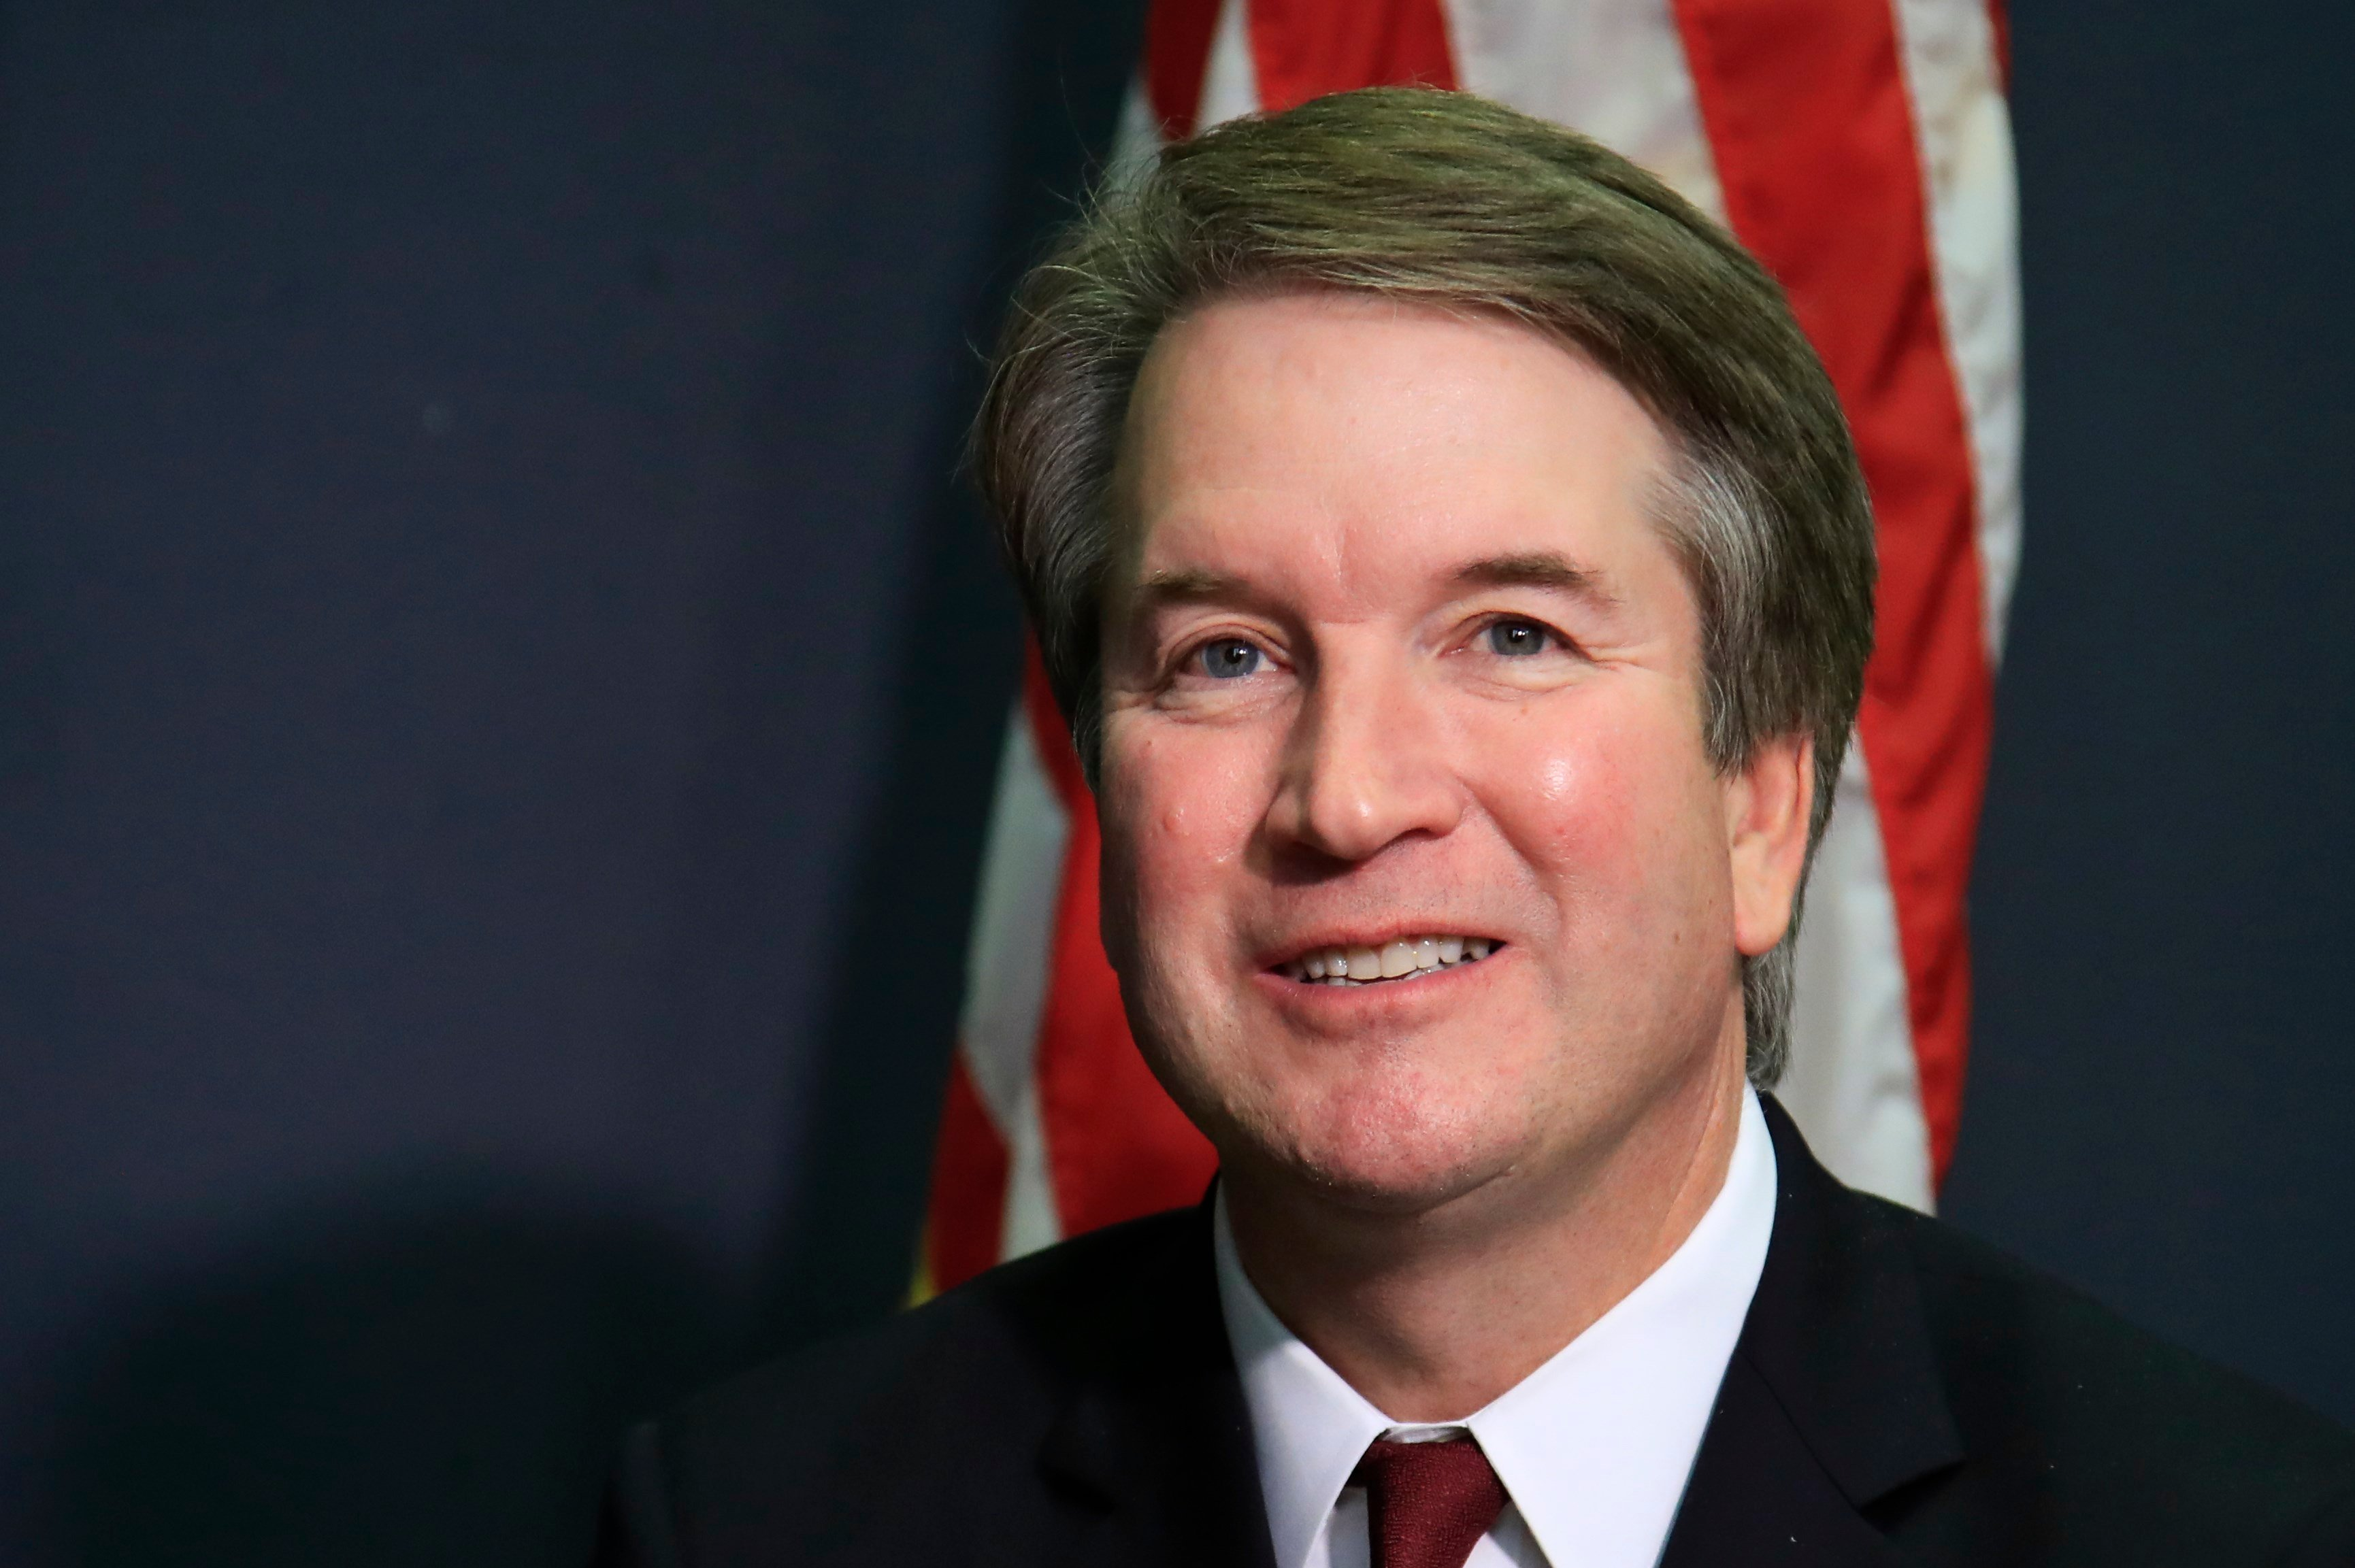 Brett Kavanaugh: Nixon Watergate tapes ruling may have been 'erroneous'